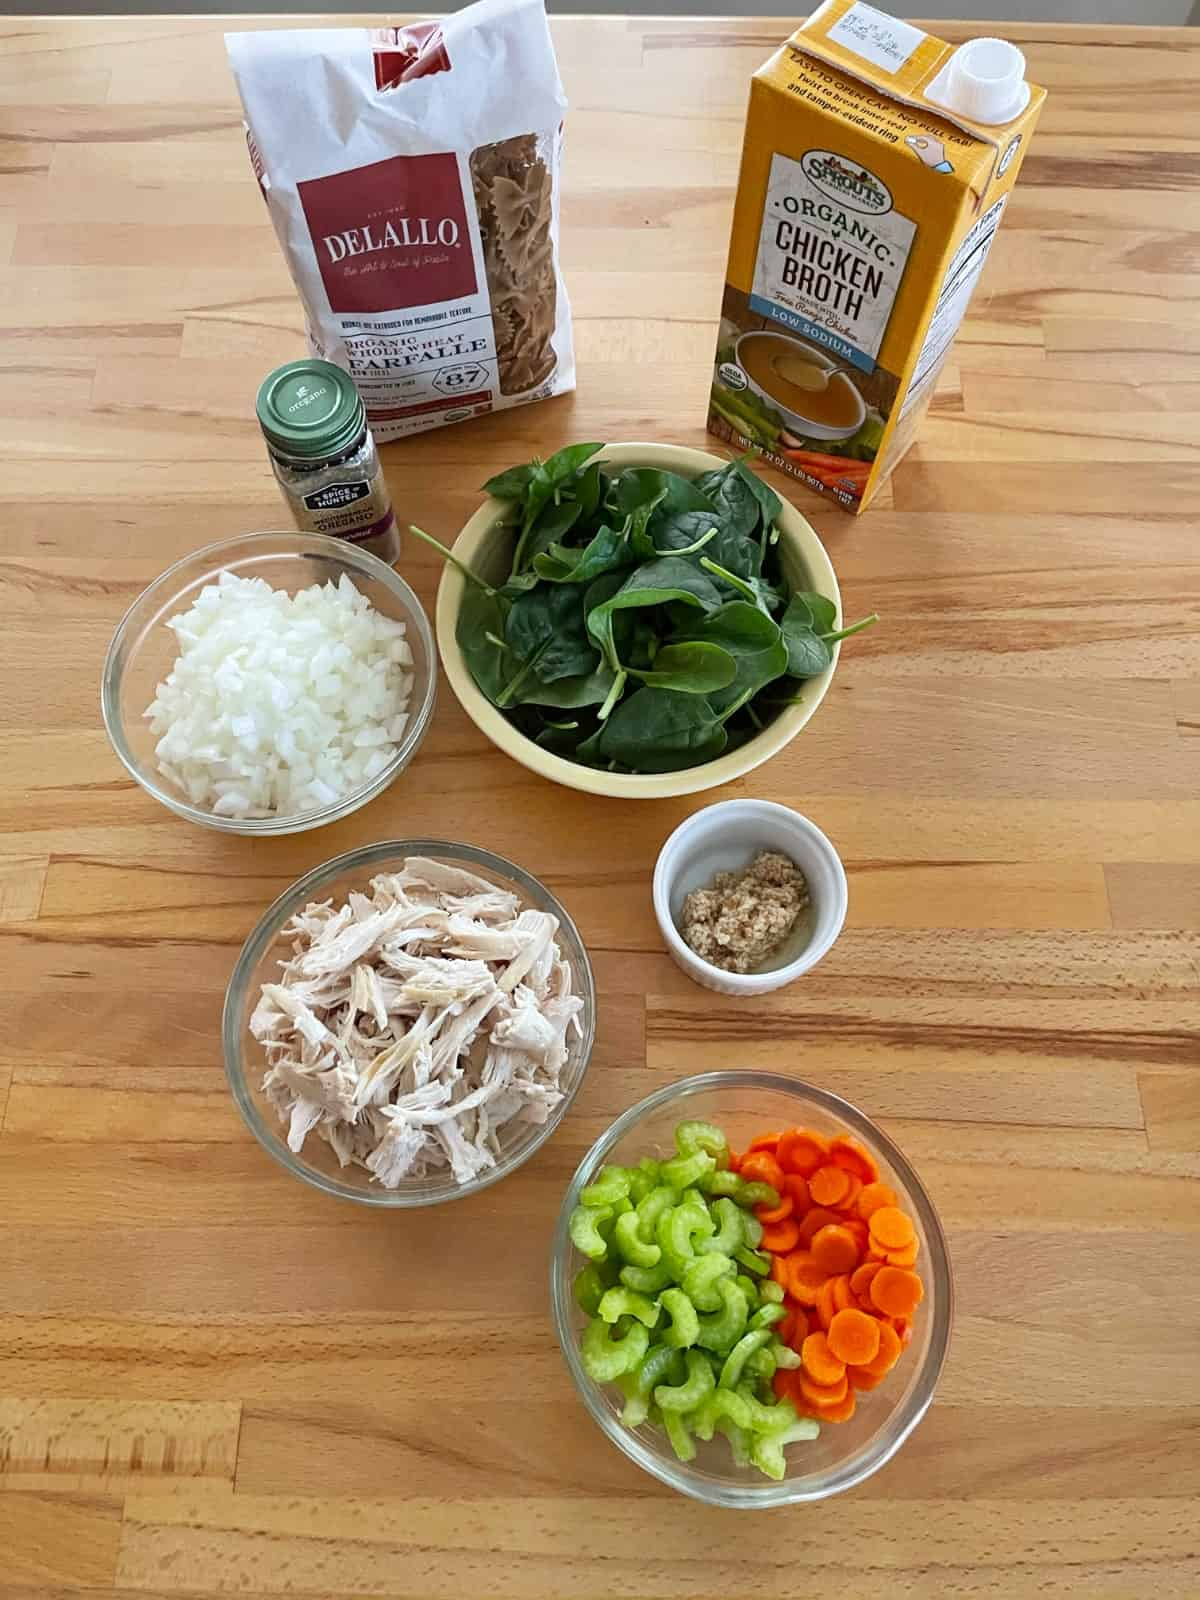 Ingredients for making soup including dry pasta, chicken broth, spinach, onion, chicken, celery, carrots and garlic.